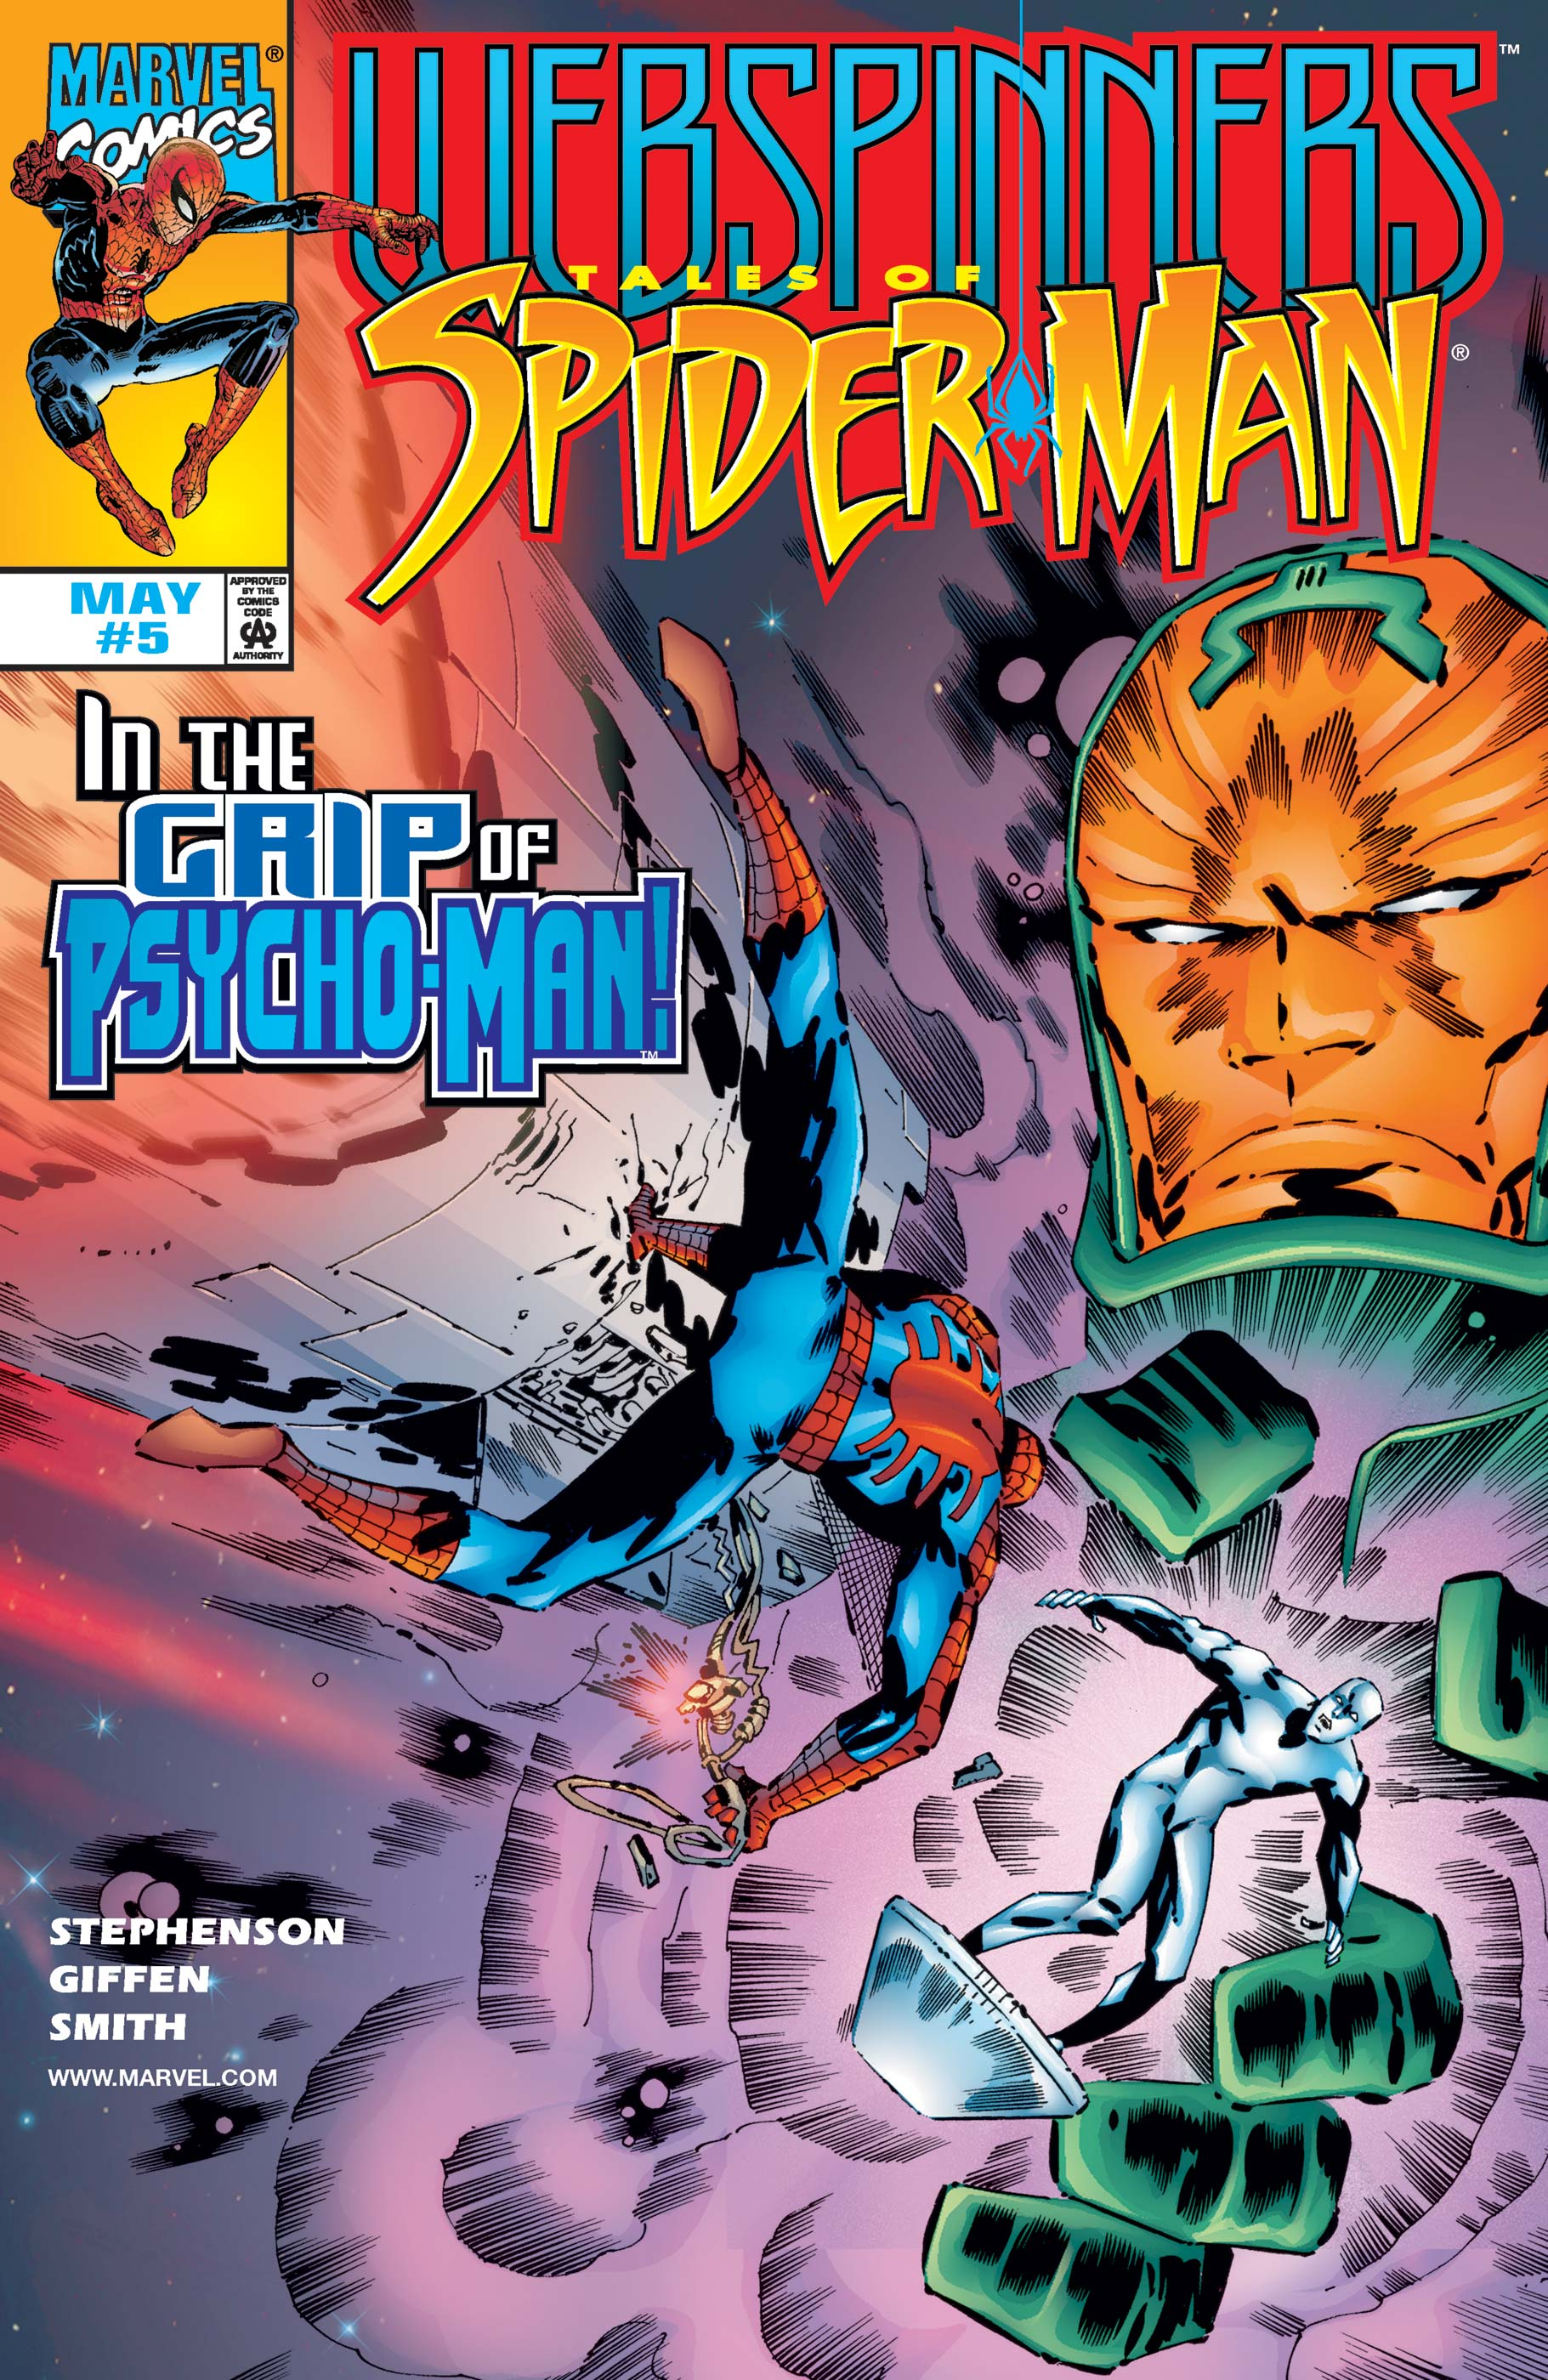 Webspinners: Tales of Spider-Man (1999) #5